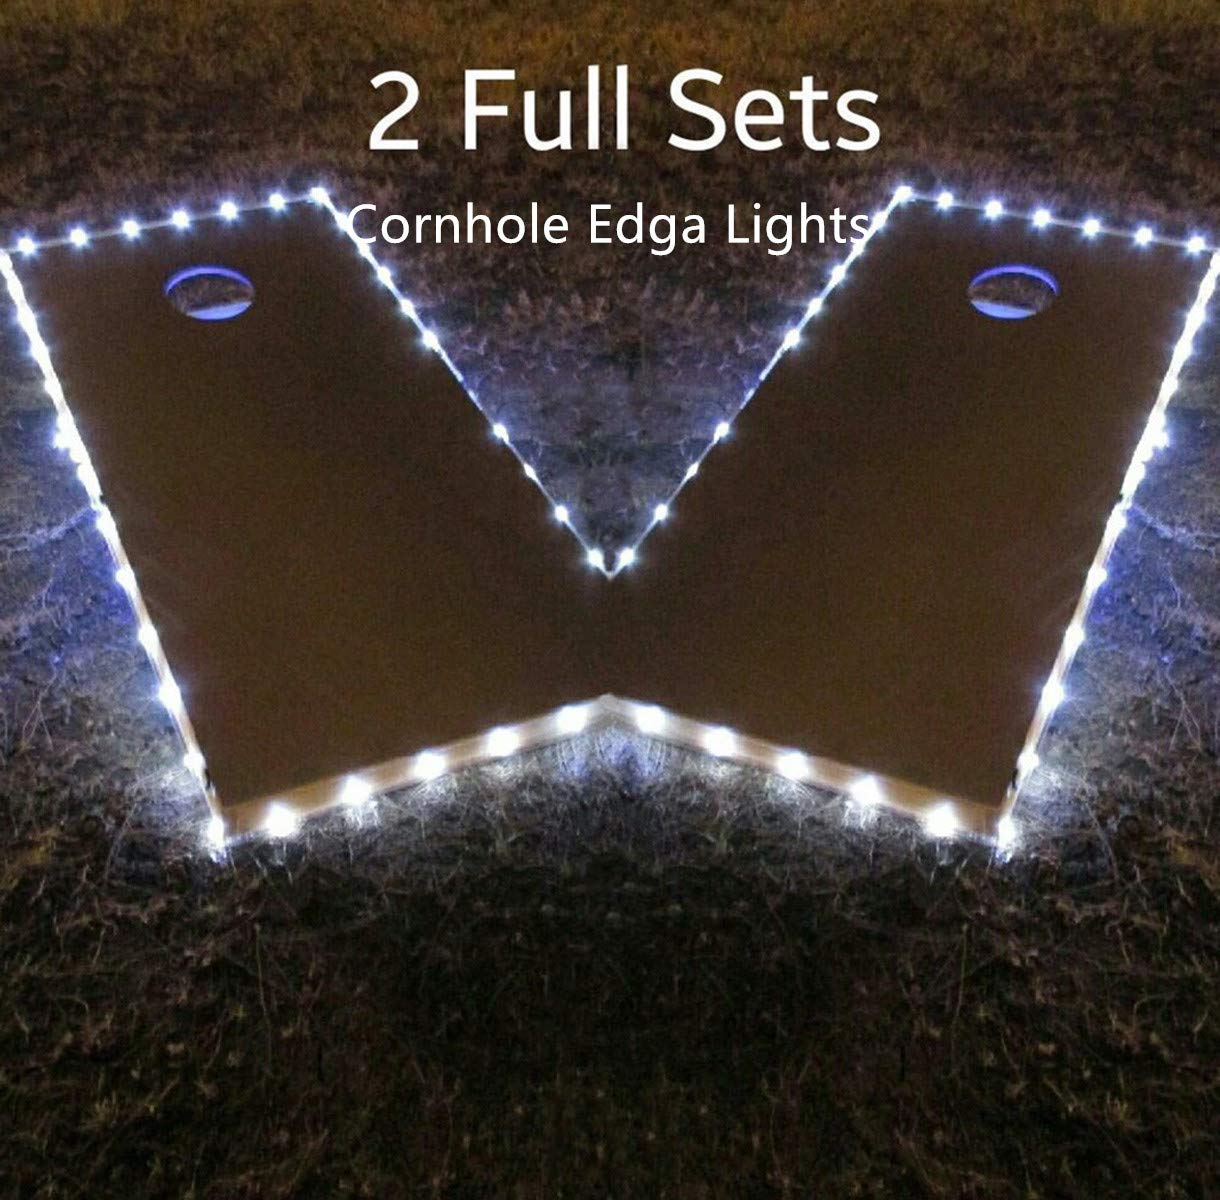 Cornhole Edge Lights Kit (Set of 2), Waterproof Ultra Bright LED Cornhole Board Night Light for Regulation Boards(42ft) Weather Resistant Long Lasting Great for Tailgates Backyard/Lawn Wedding BBQ!